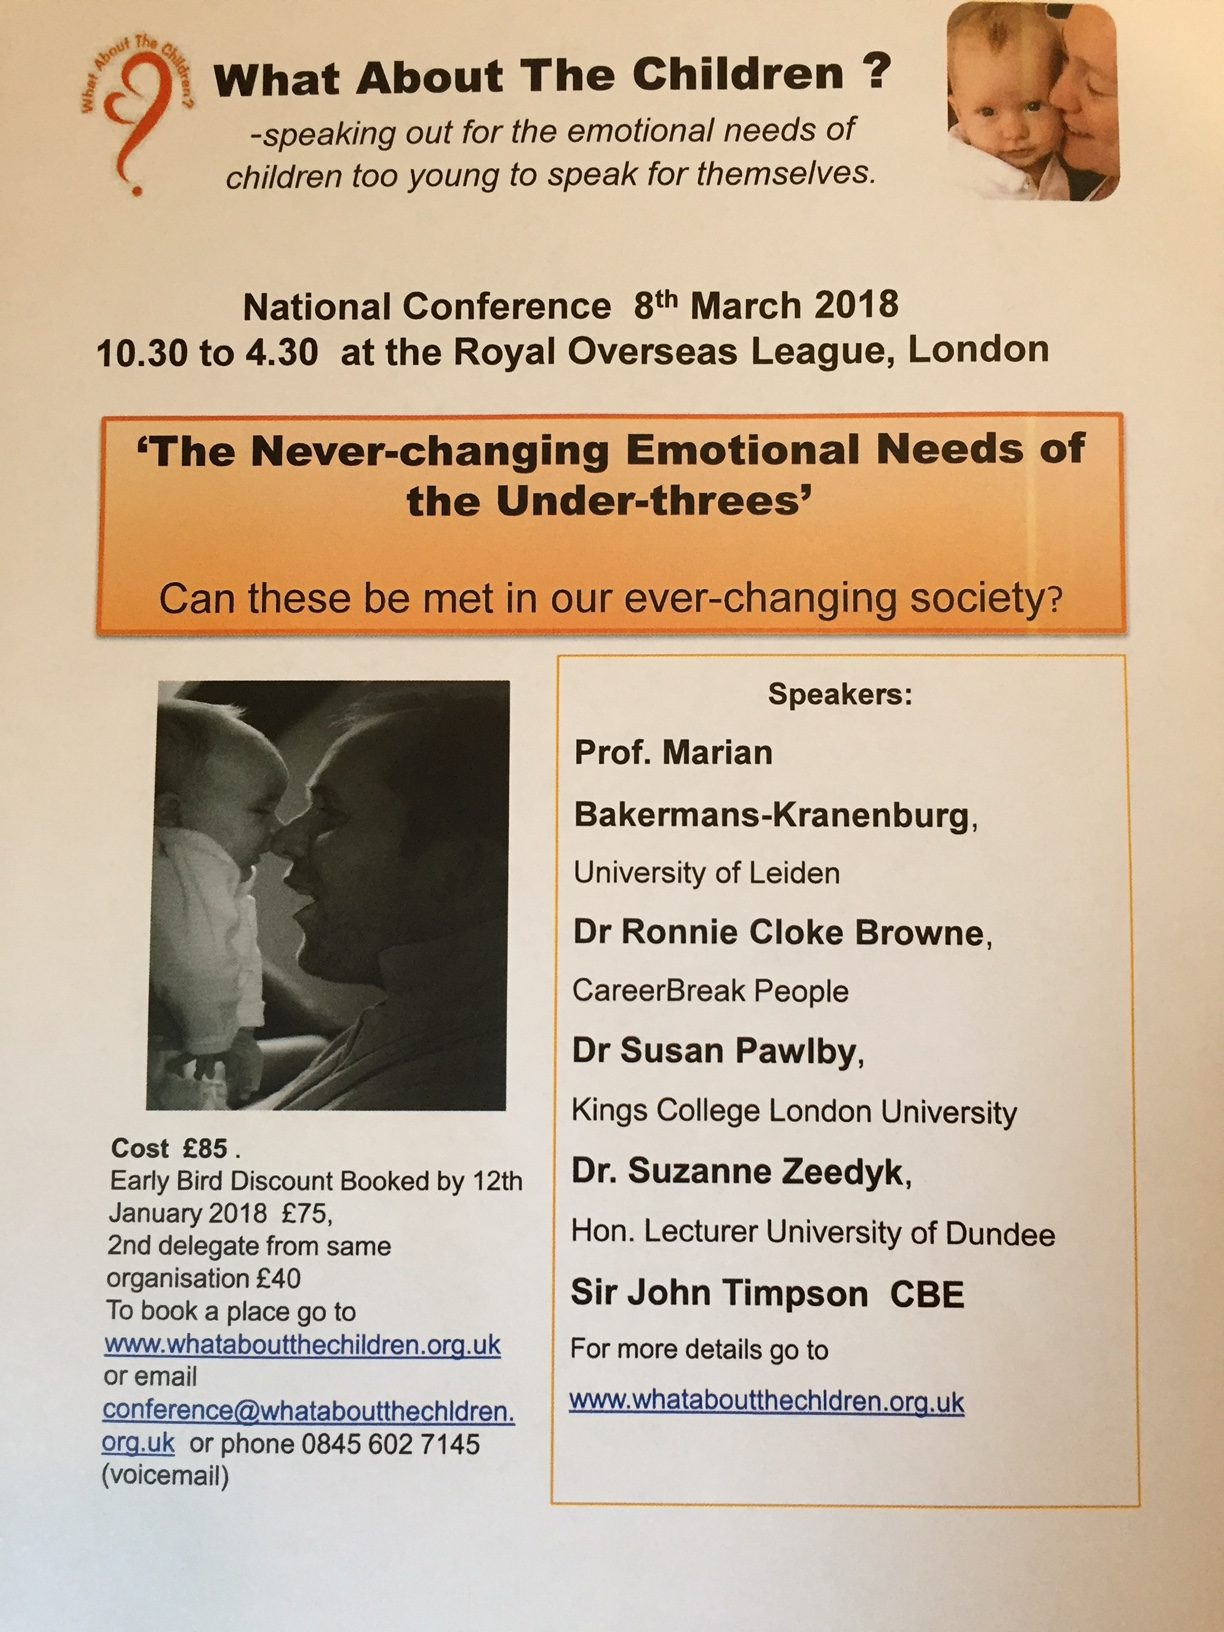 WATCh conference flyer